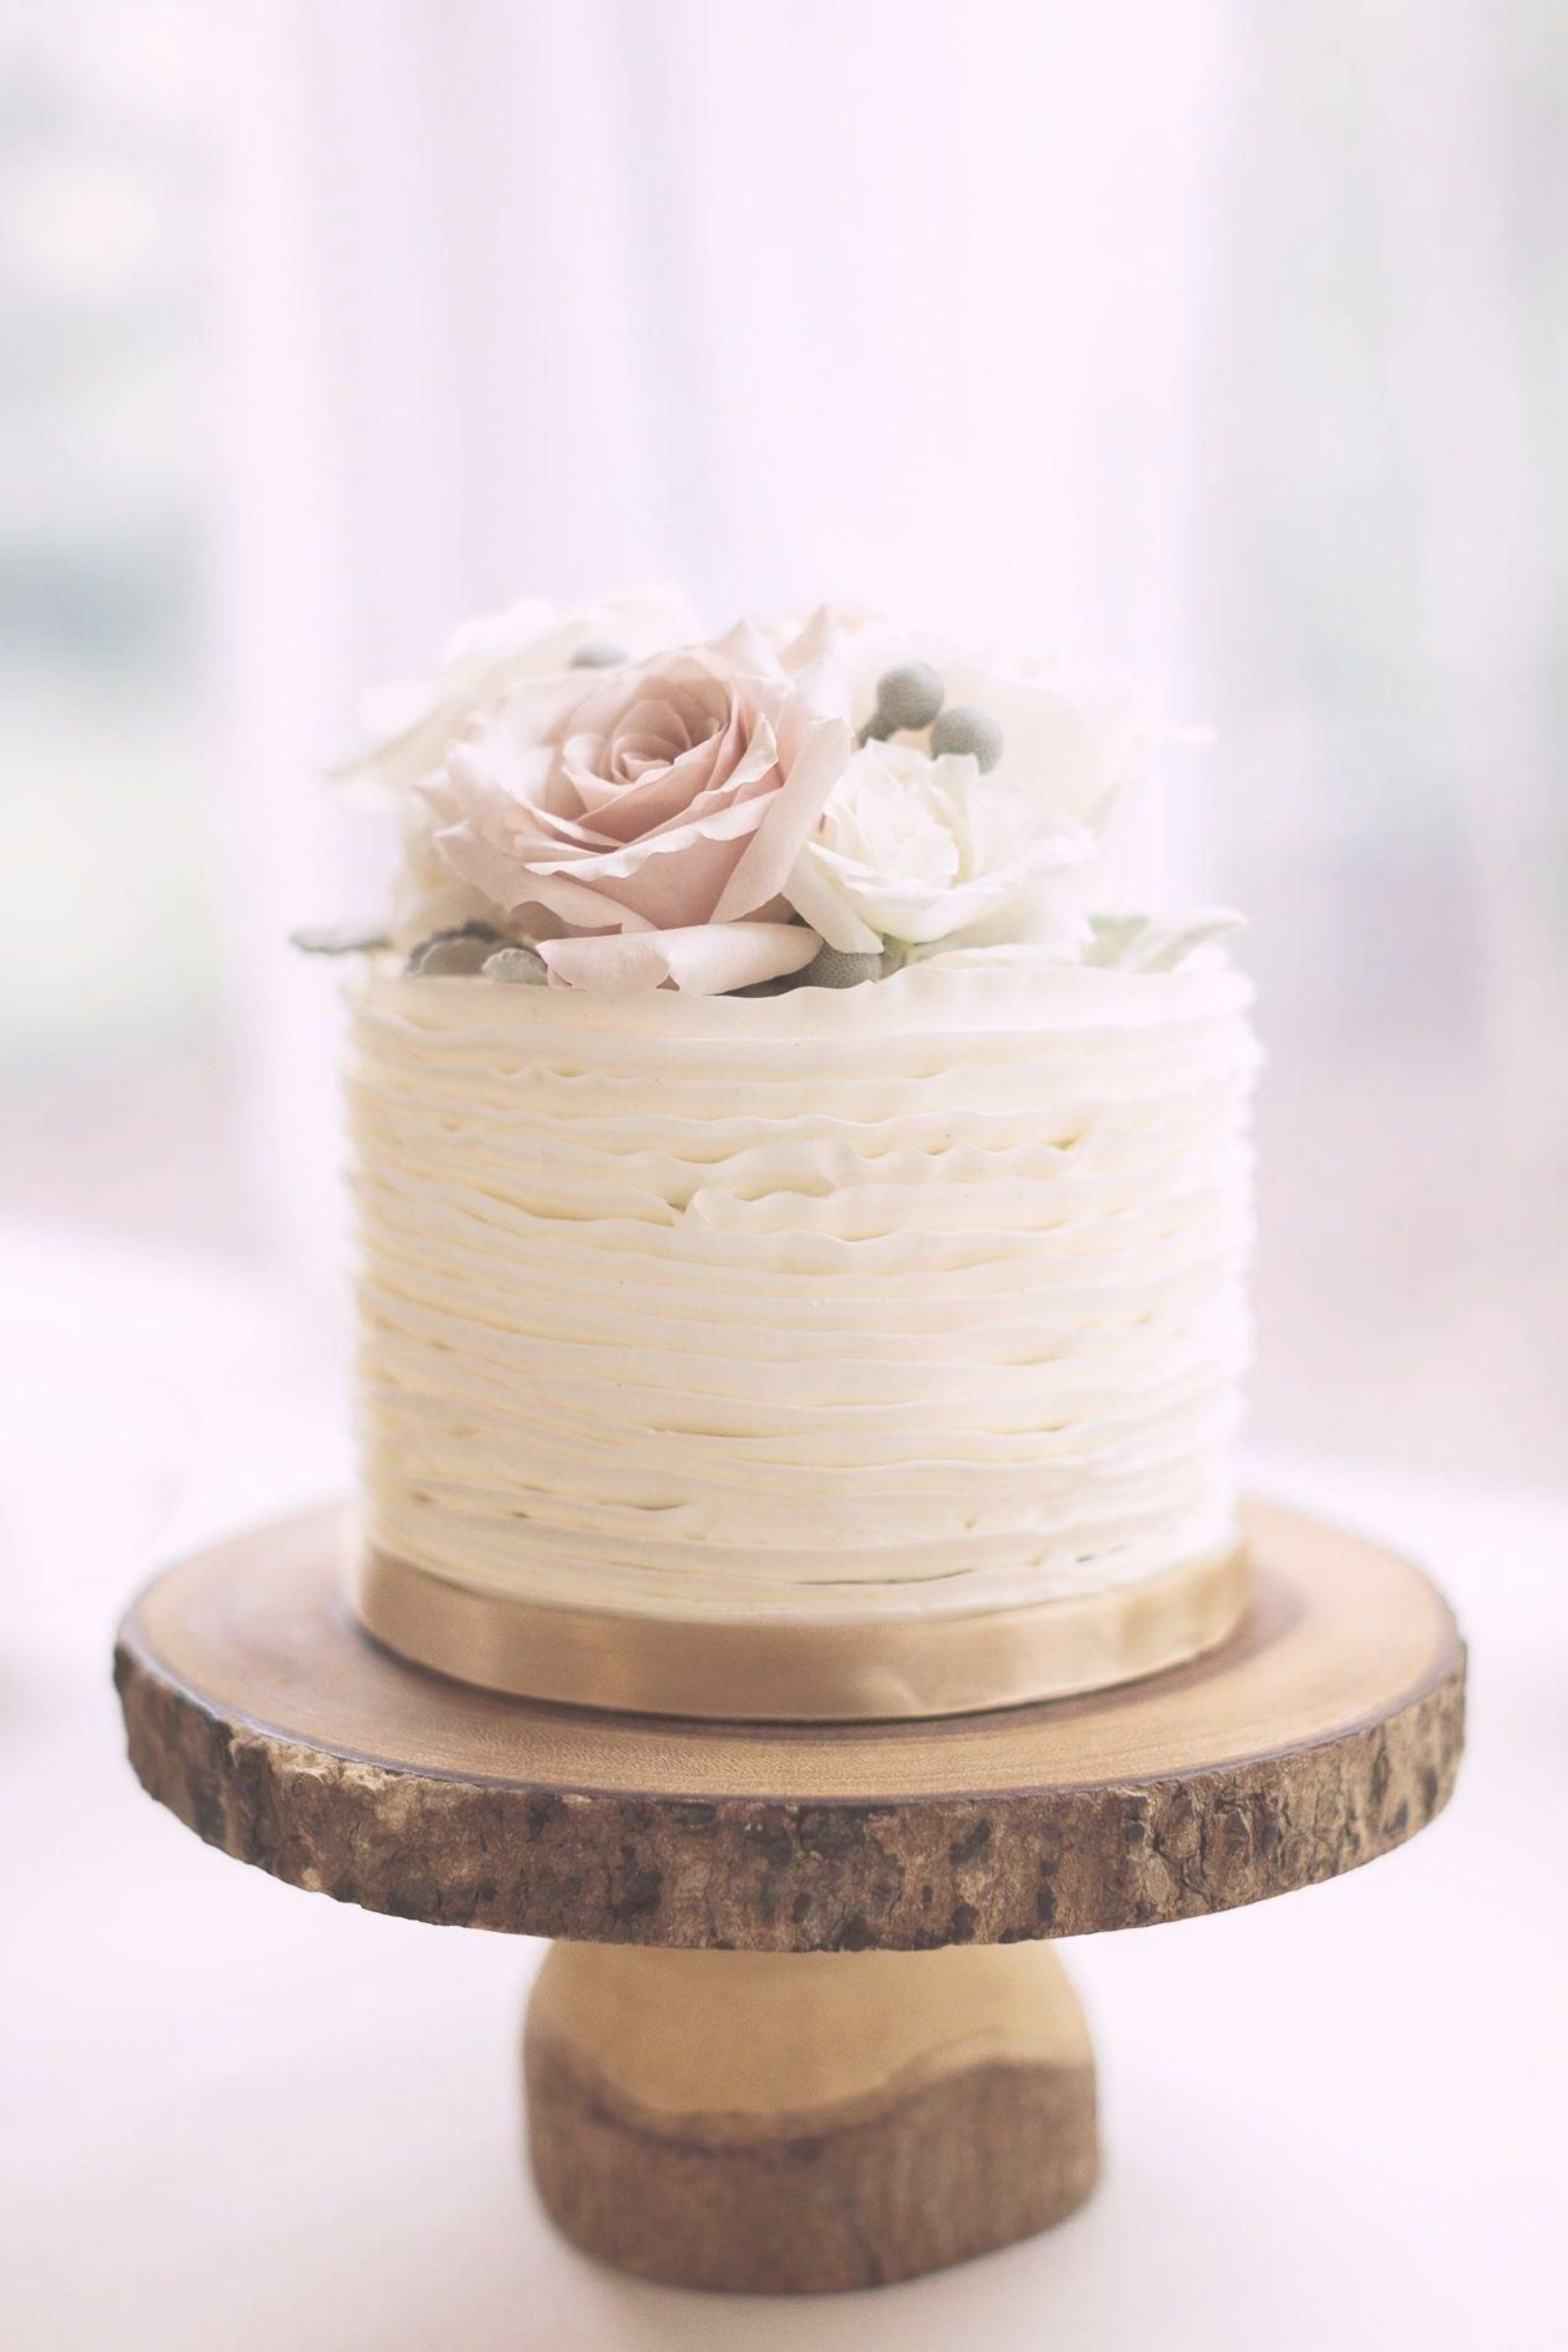 Wedding Cakes Kindly Check This Eye Pleasing Line Up Pin Reference 9709459235 Here Wed Wedding Cake Rustic Simple Wedding Cake Wedding Cakes With Cupcakes